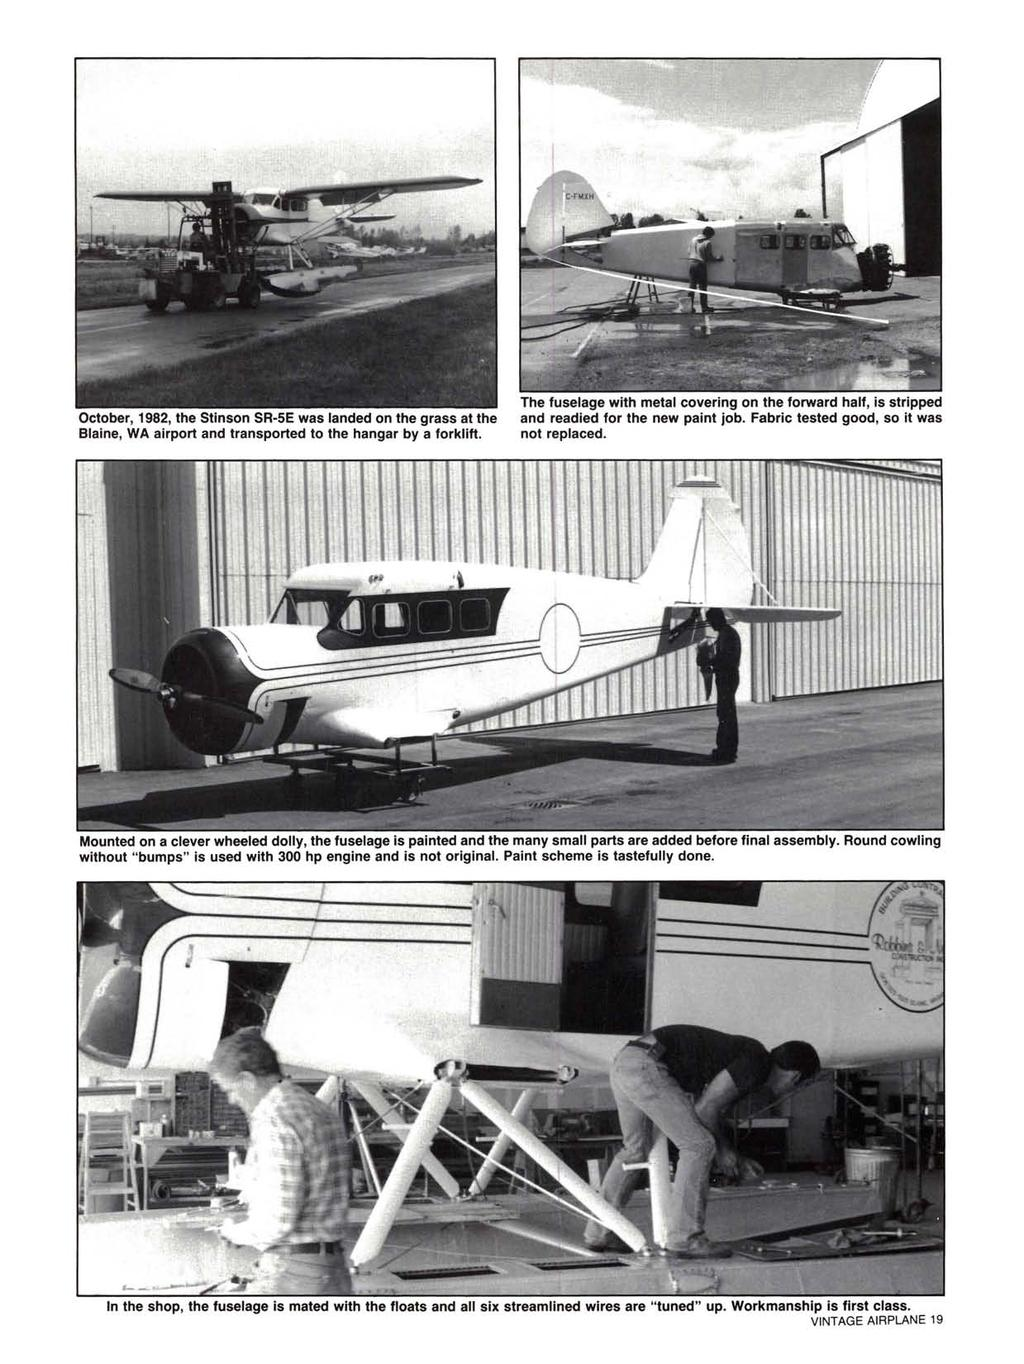 October, 1982, the Stinson SR-SE was landed on the grass at the Blaine, WA airport and transported to the hangar by a forklift.